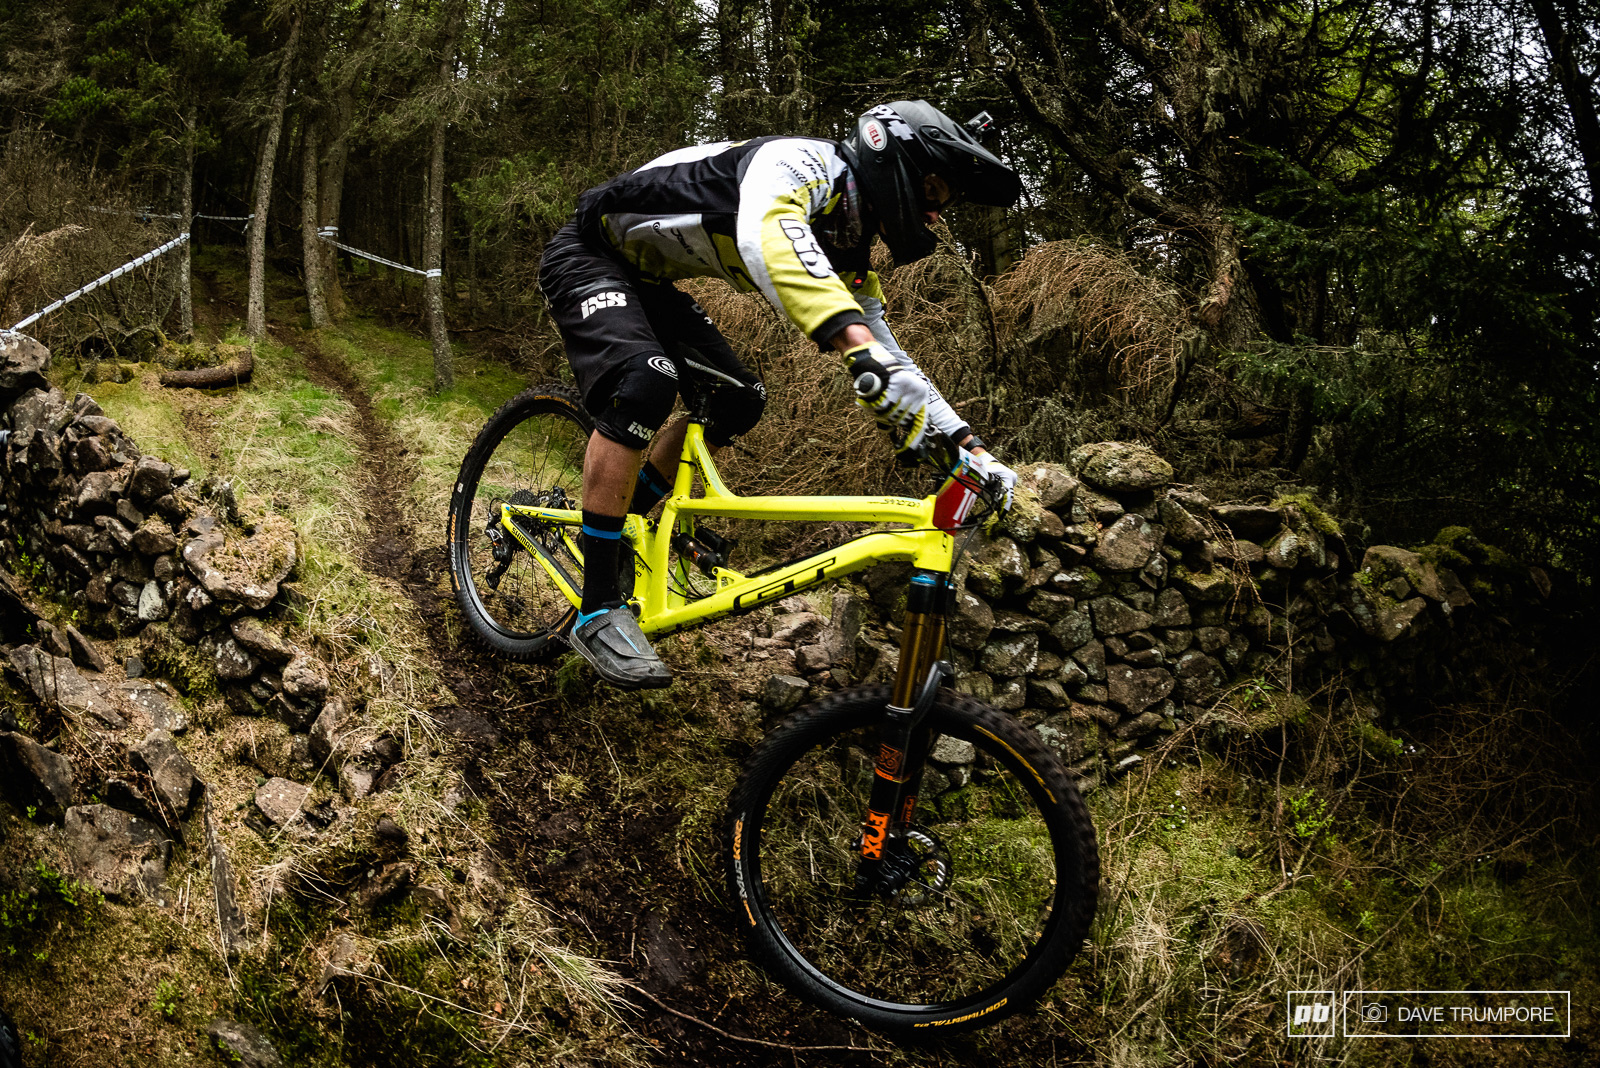 Knocked off the podium on the last stage of the day in Ireland Martin Maes has a score to settle here in Scotland